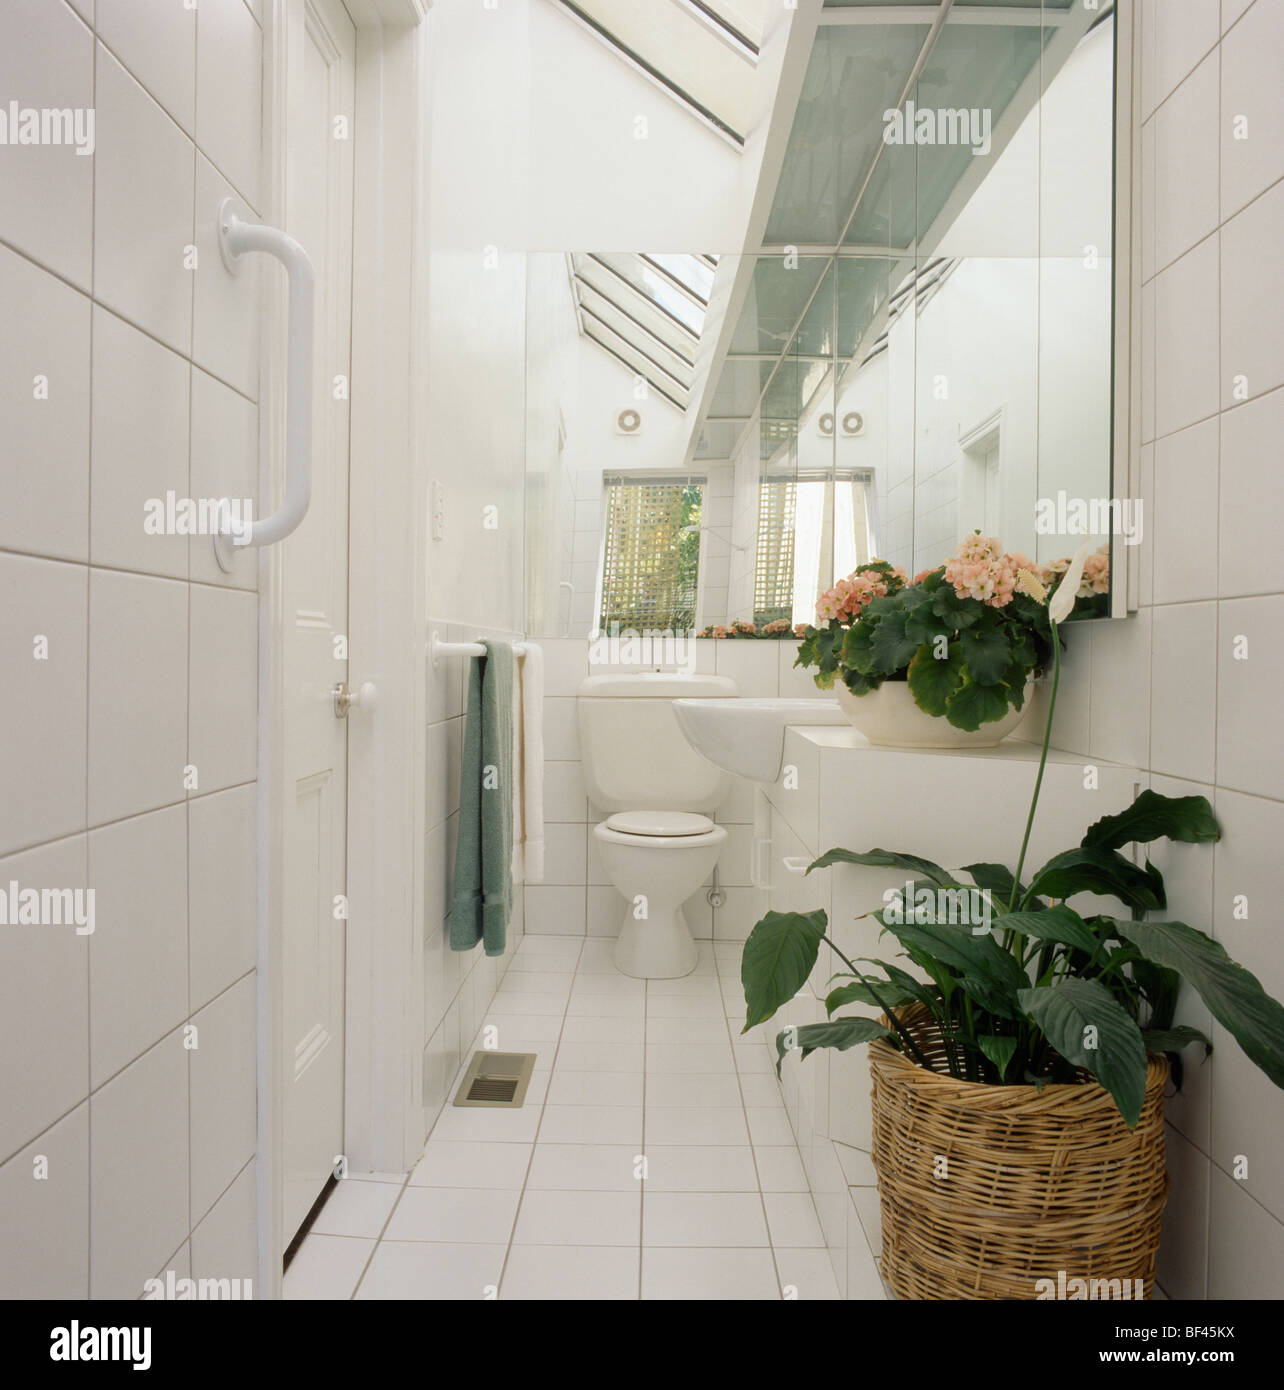 Captivating Small Narrow Modern White Tiled Bathroom Extension With Green Houseplant In  Basket